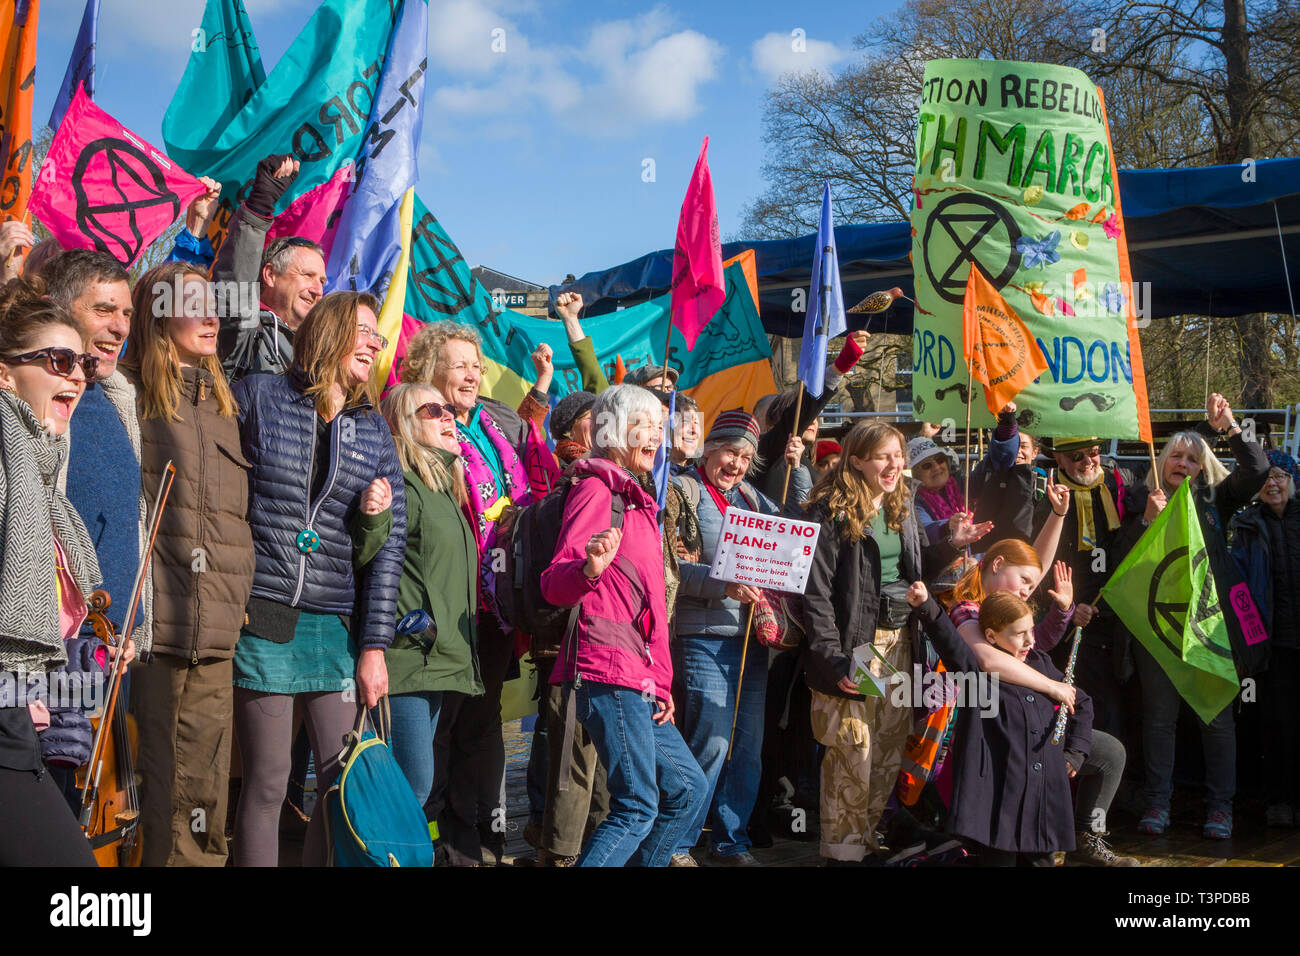 The Oxford branch of Extinction rebellion start their march to London at Folly Bridge, Oxford by taking a Steamer to Abingdon along the River Thames - Stock Image